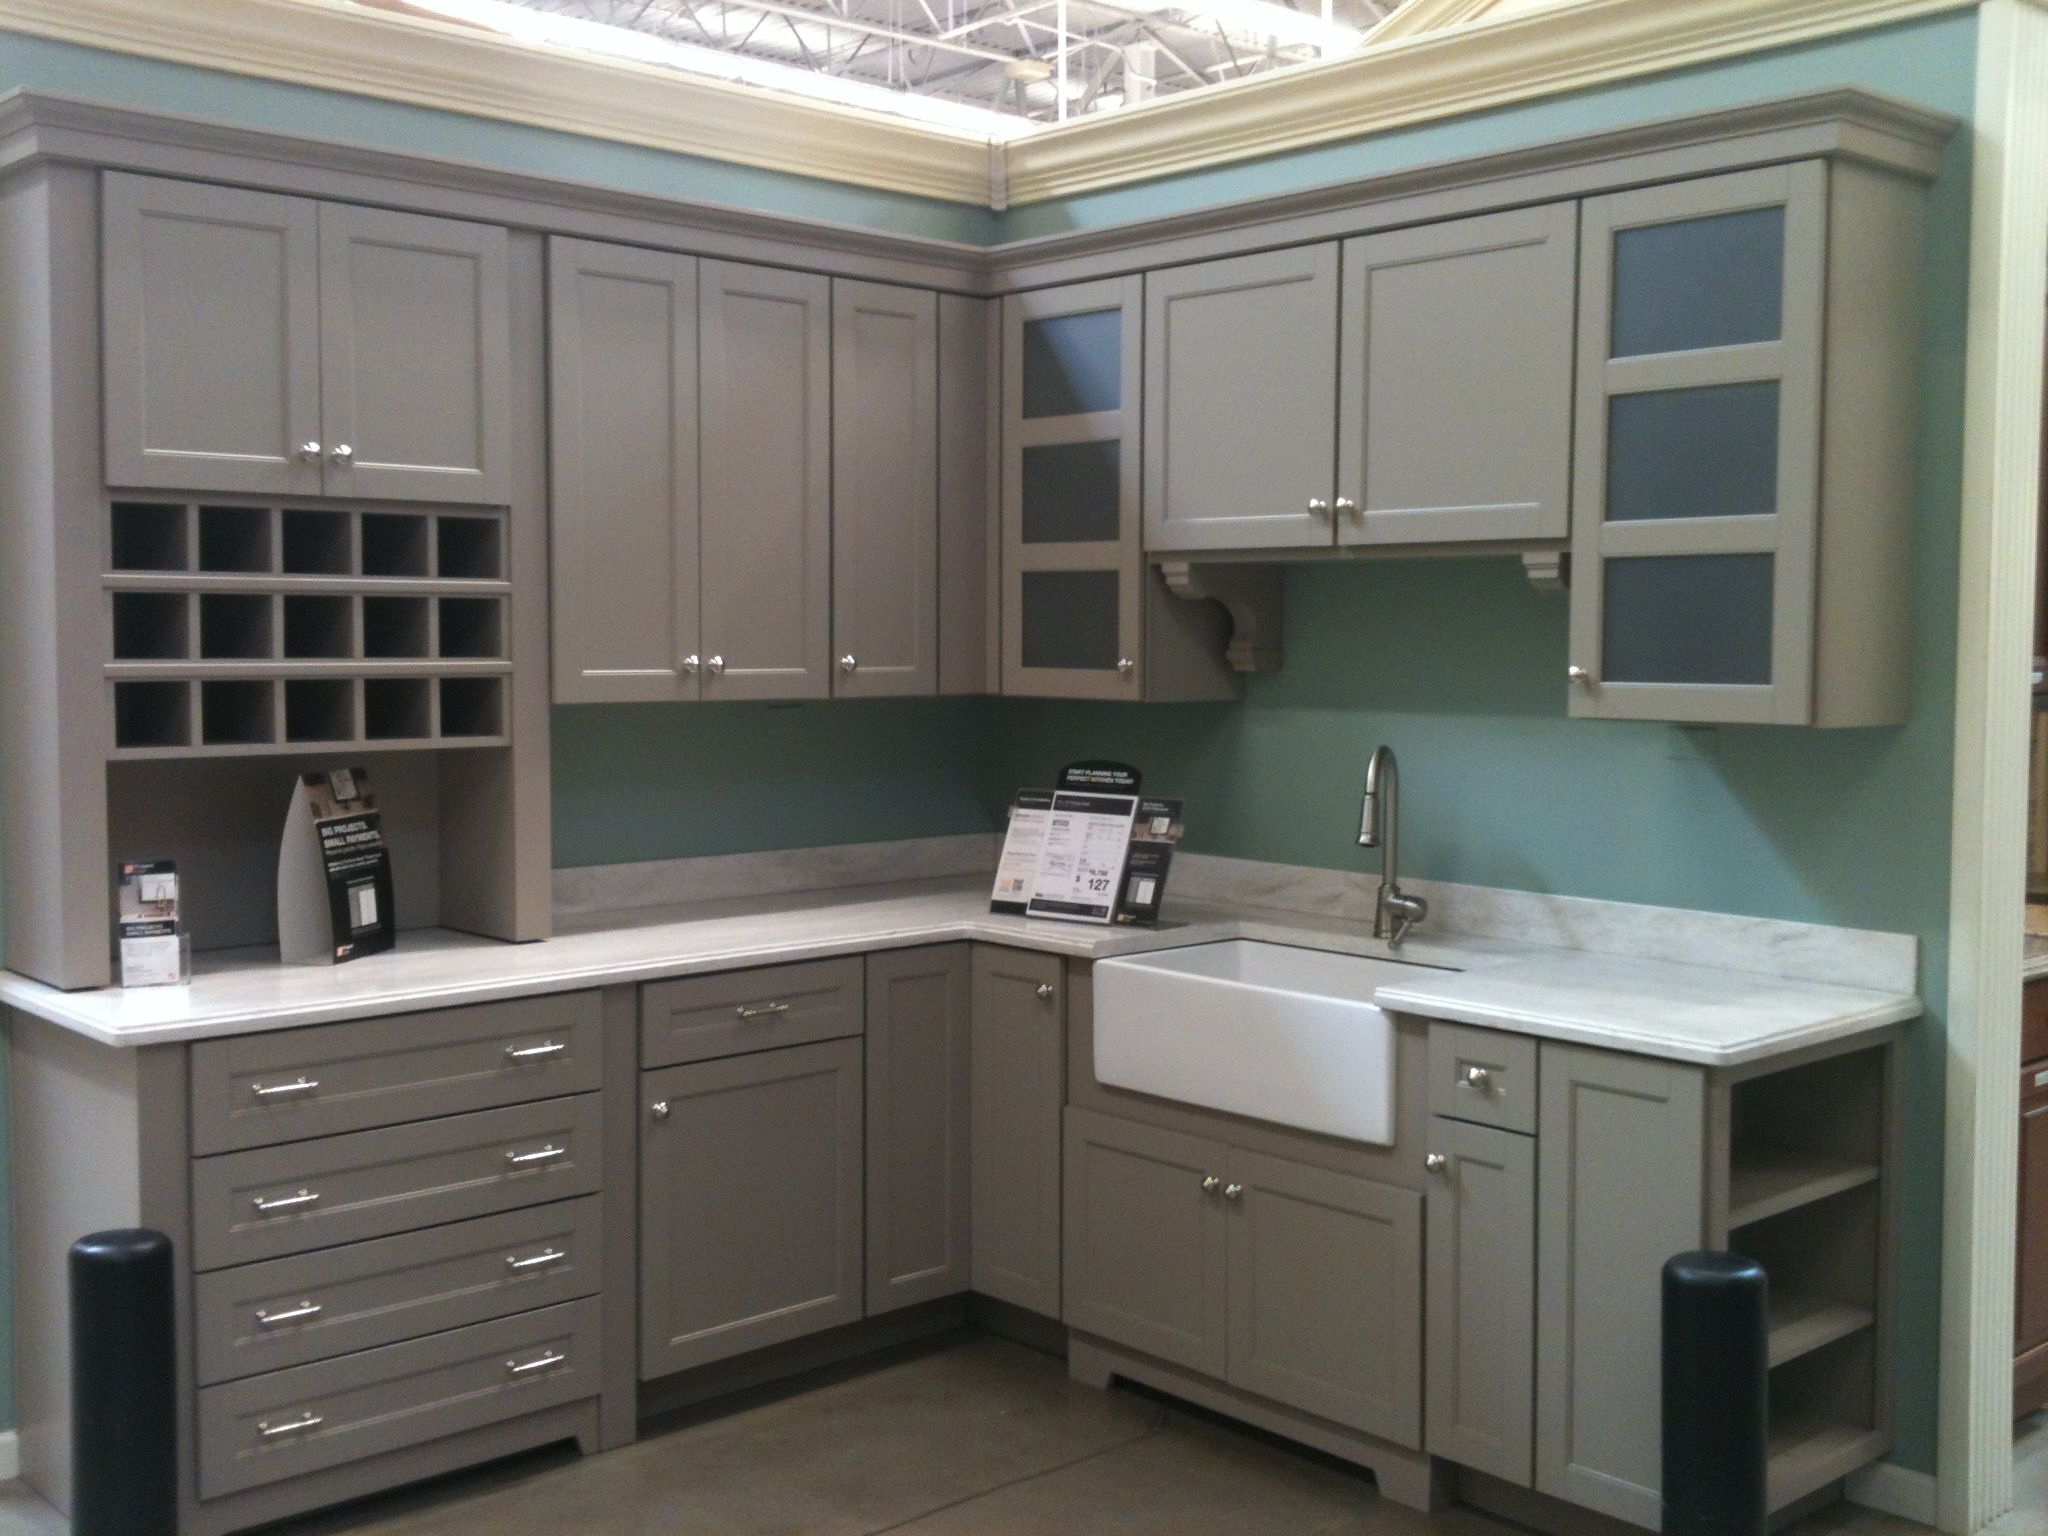 Martha stewart cabinets from home depot like the shelves for House kitchen cabinets